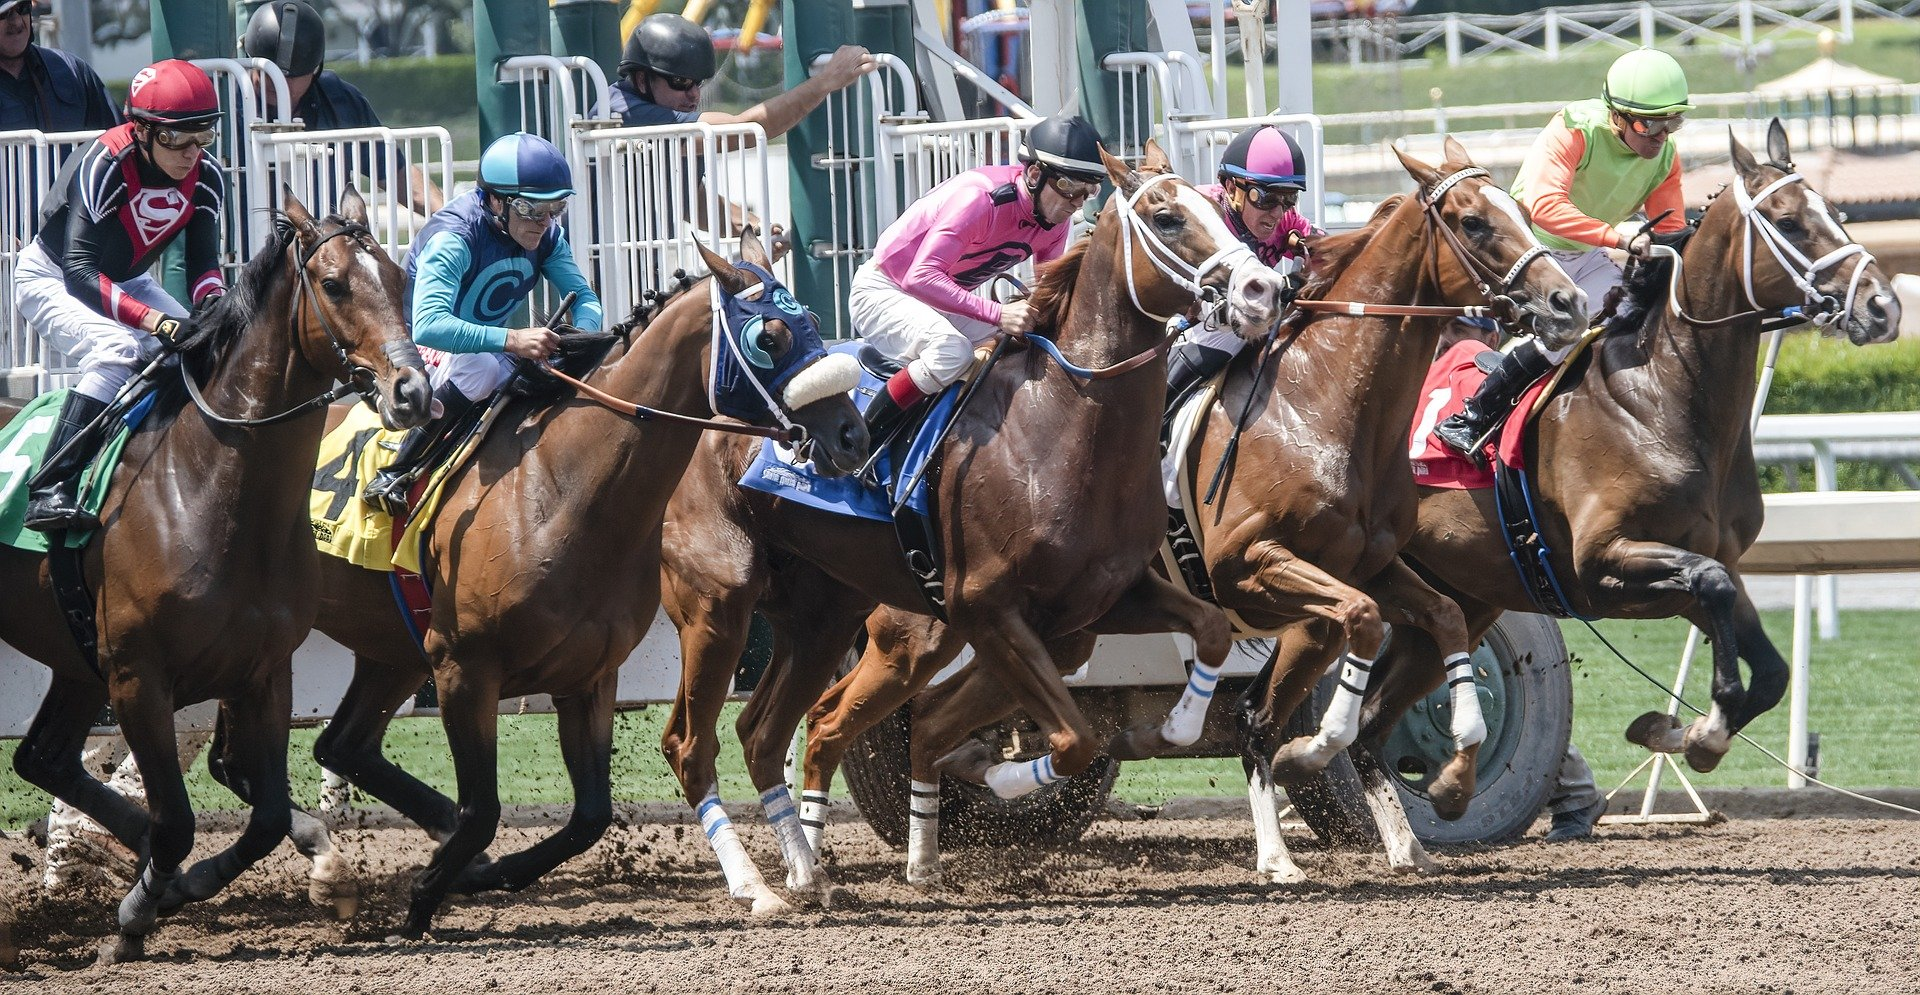 How to win at horse racing – A beginner's guide